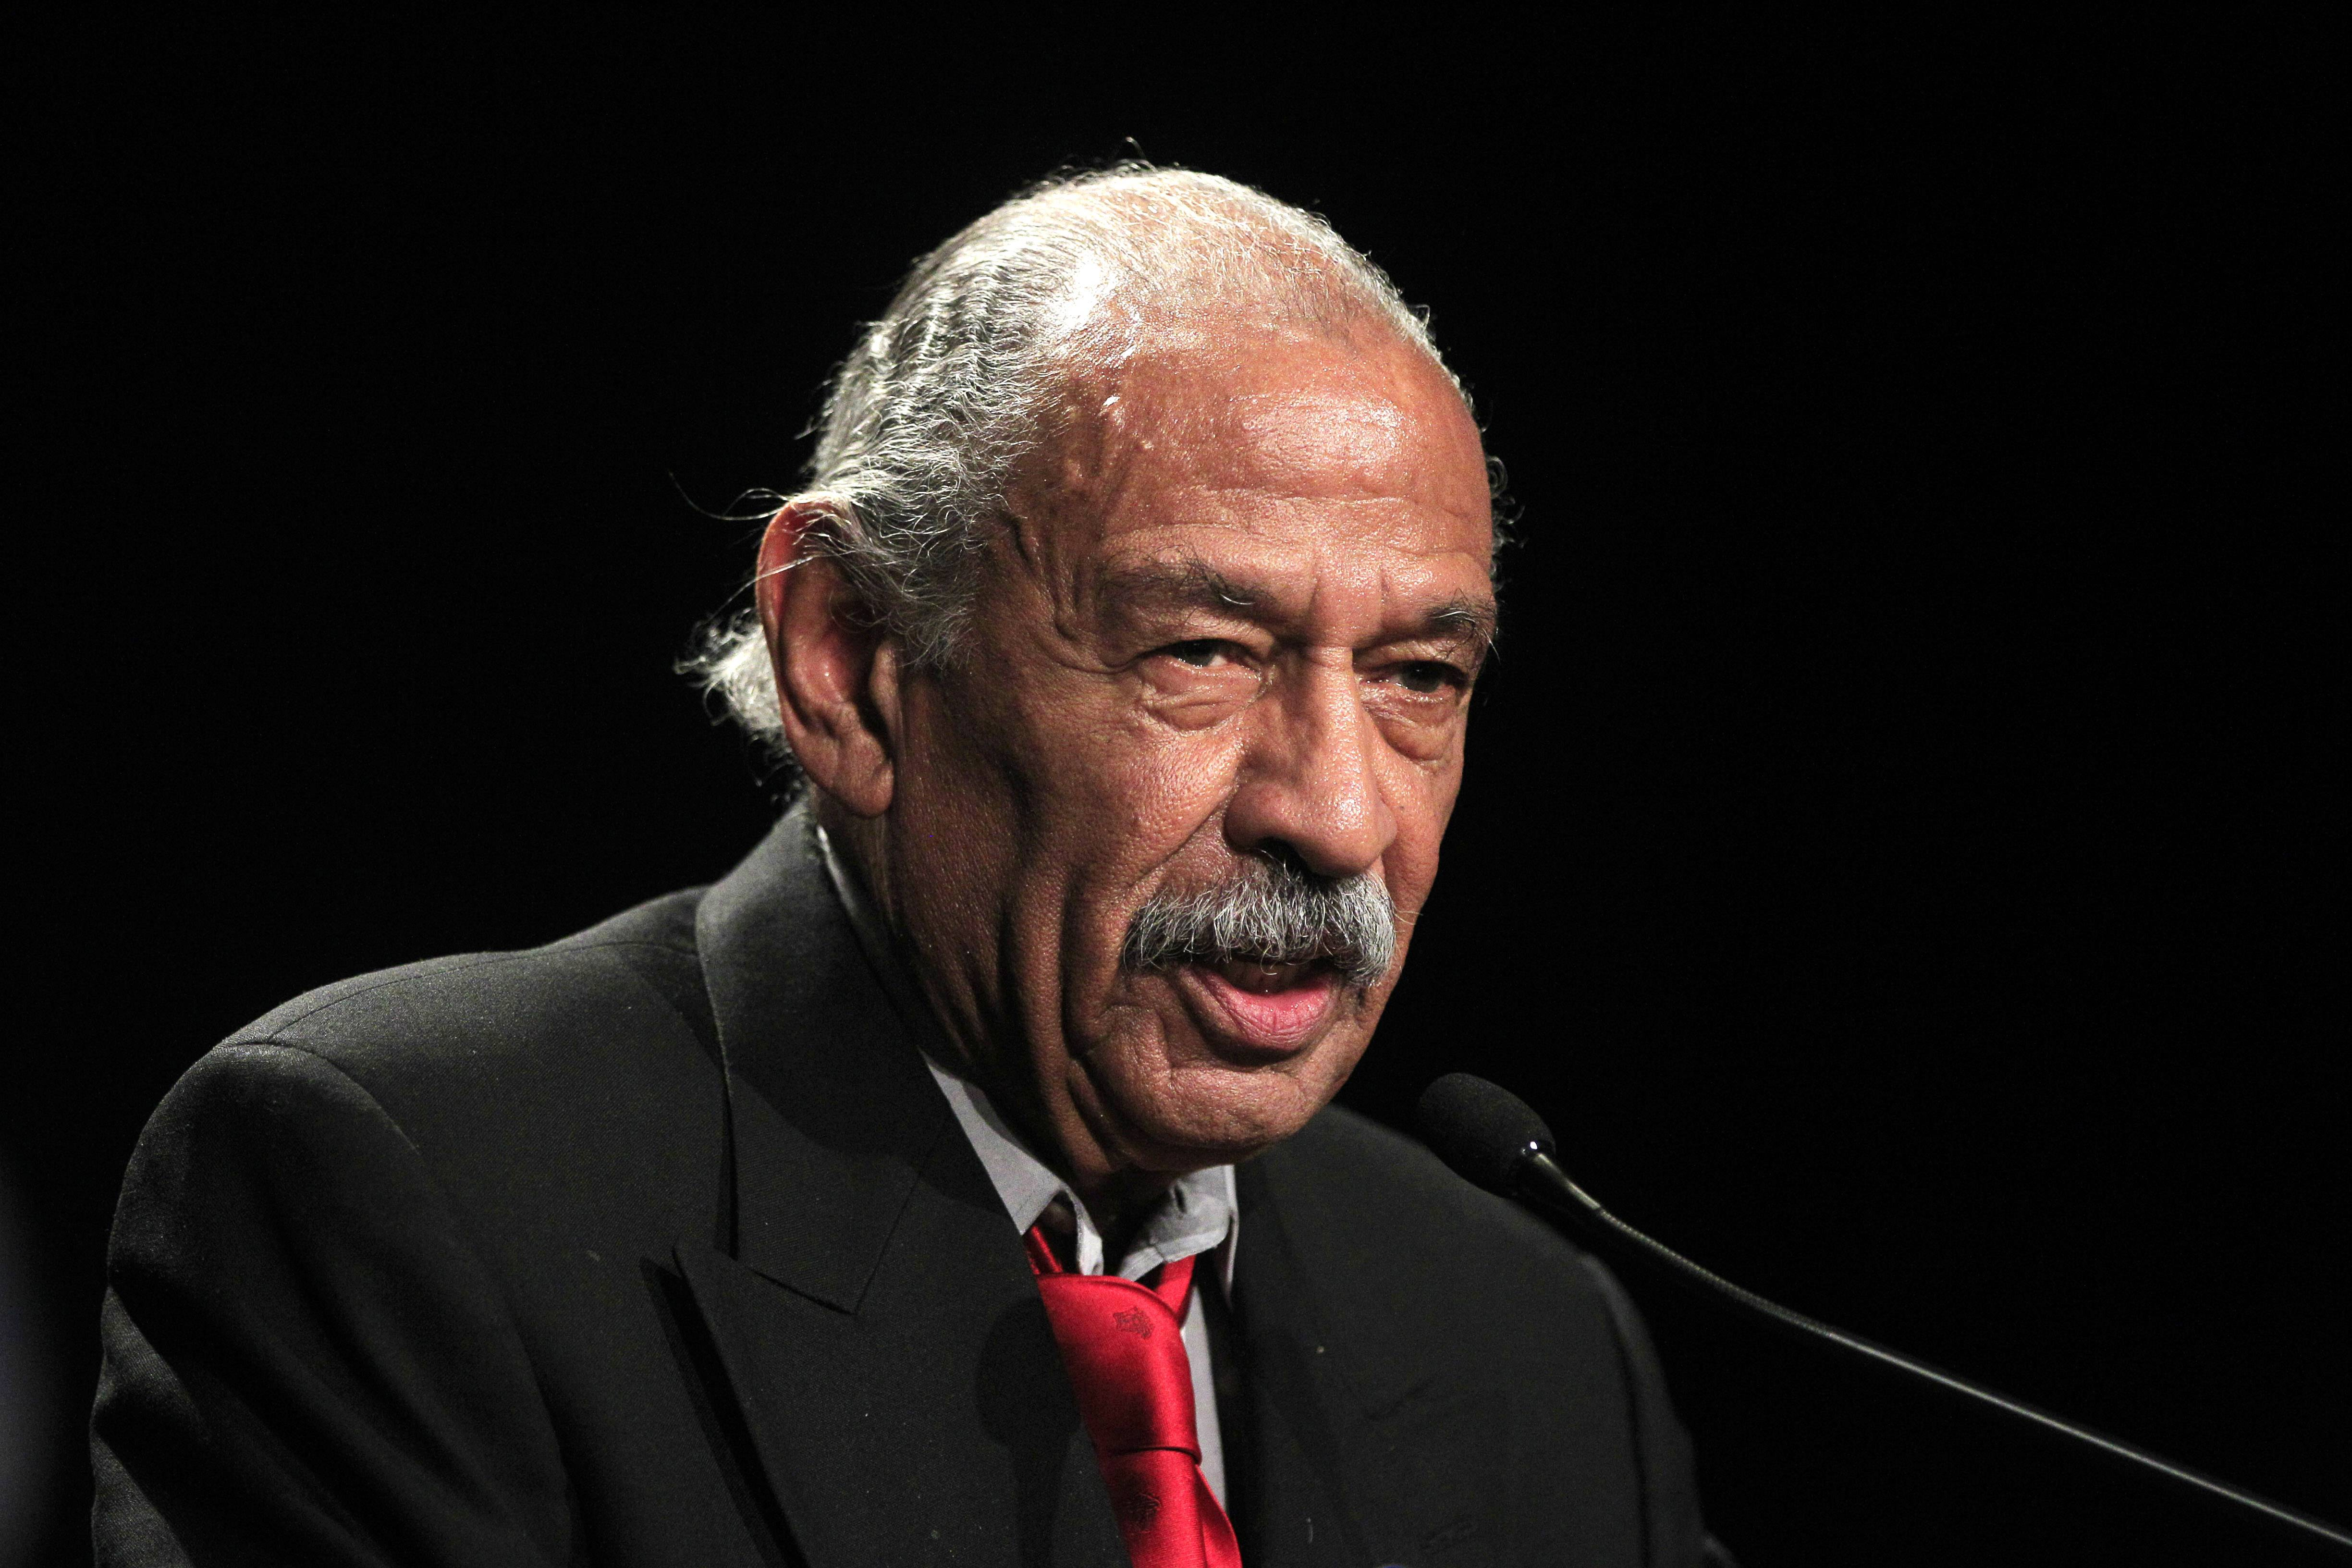 Longtime Congressman John Conyers of Michigan doesn't have enough signatures to appear on the Aug. 5 primary ballot, an elections official announced Tuesday.